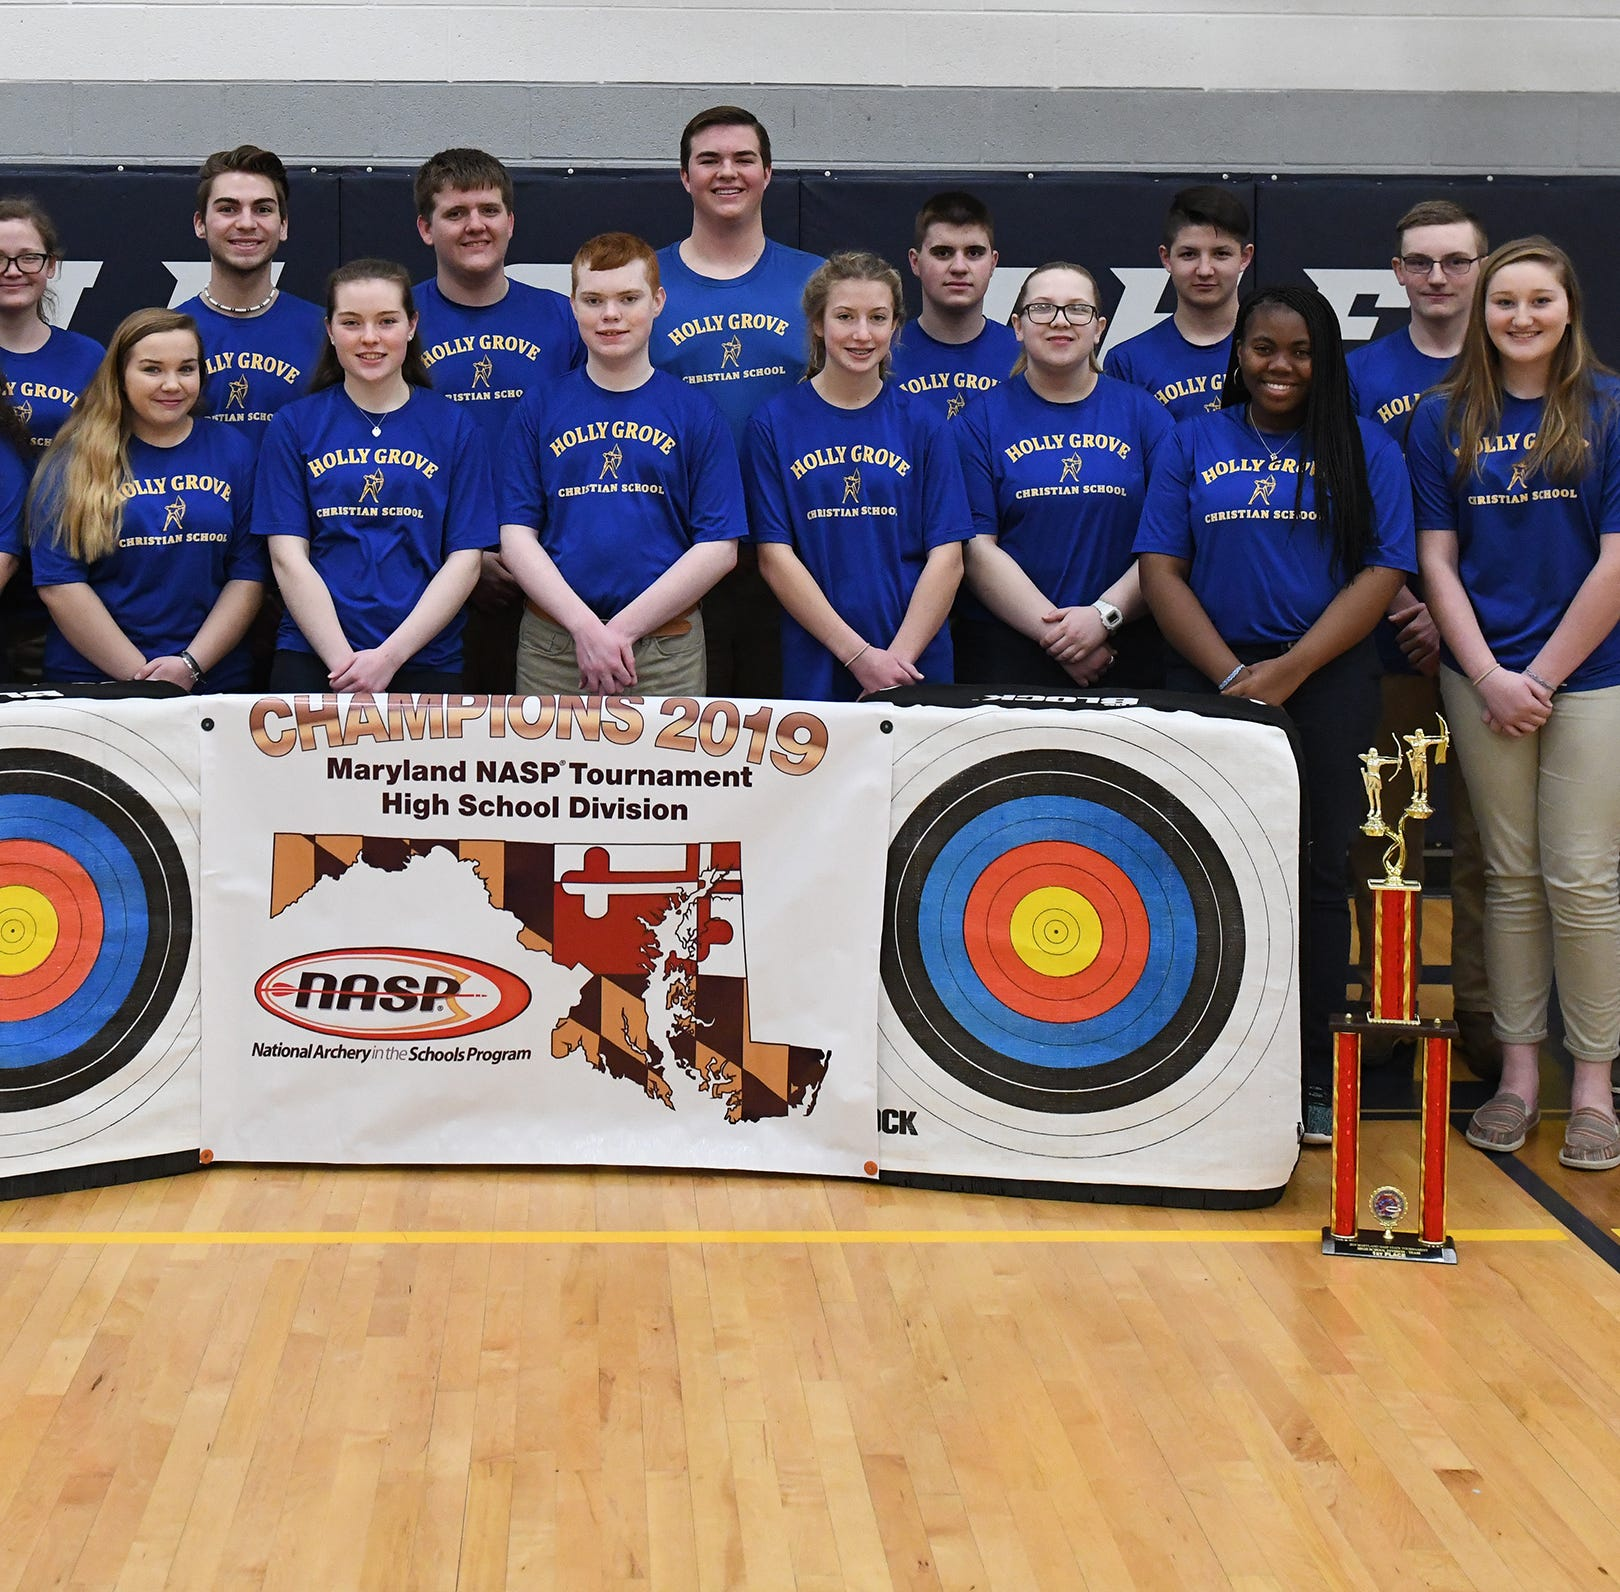 Holly Grove archery hits target with another state championship